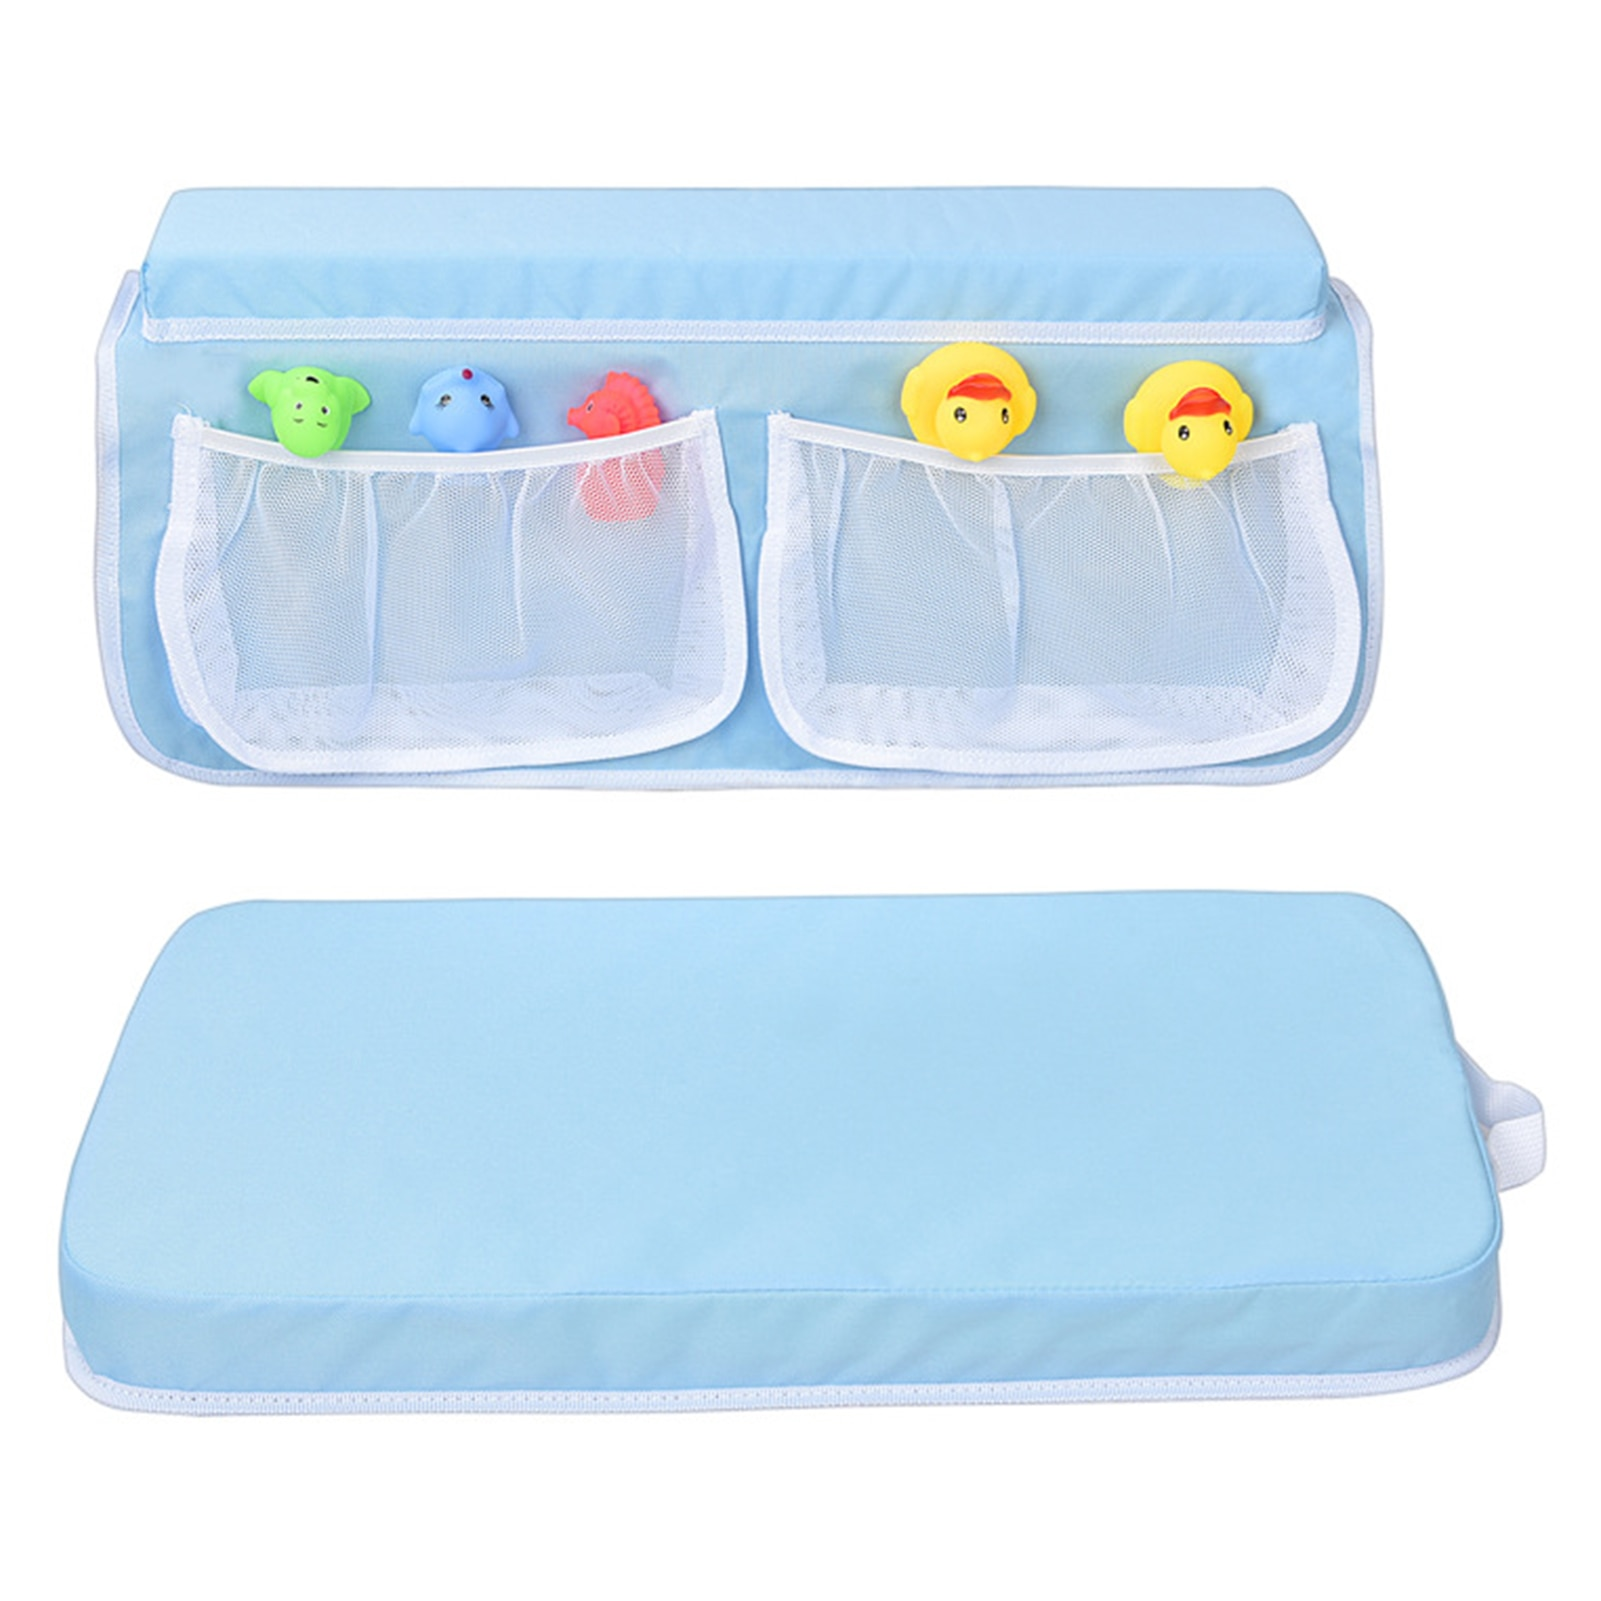 Baby Anti-slip Mat Bath Kneeler Elbow Rest Pad Set Kneeling Mat With 4 Pockets For Children Bathroom